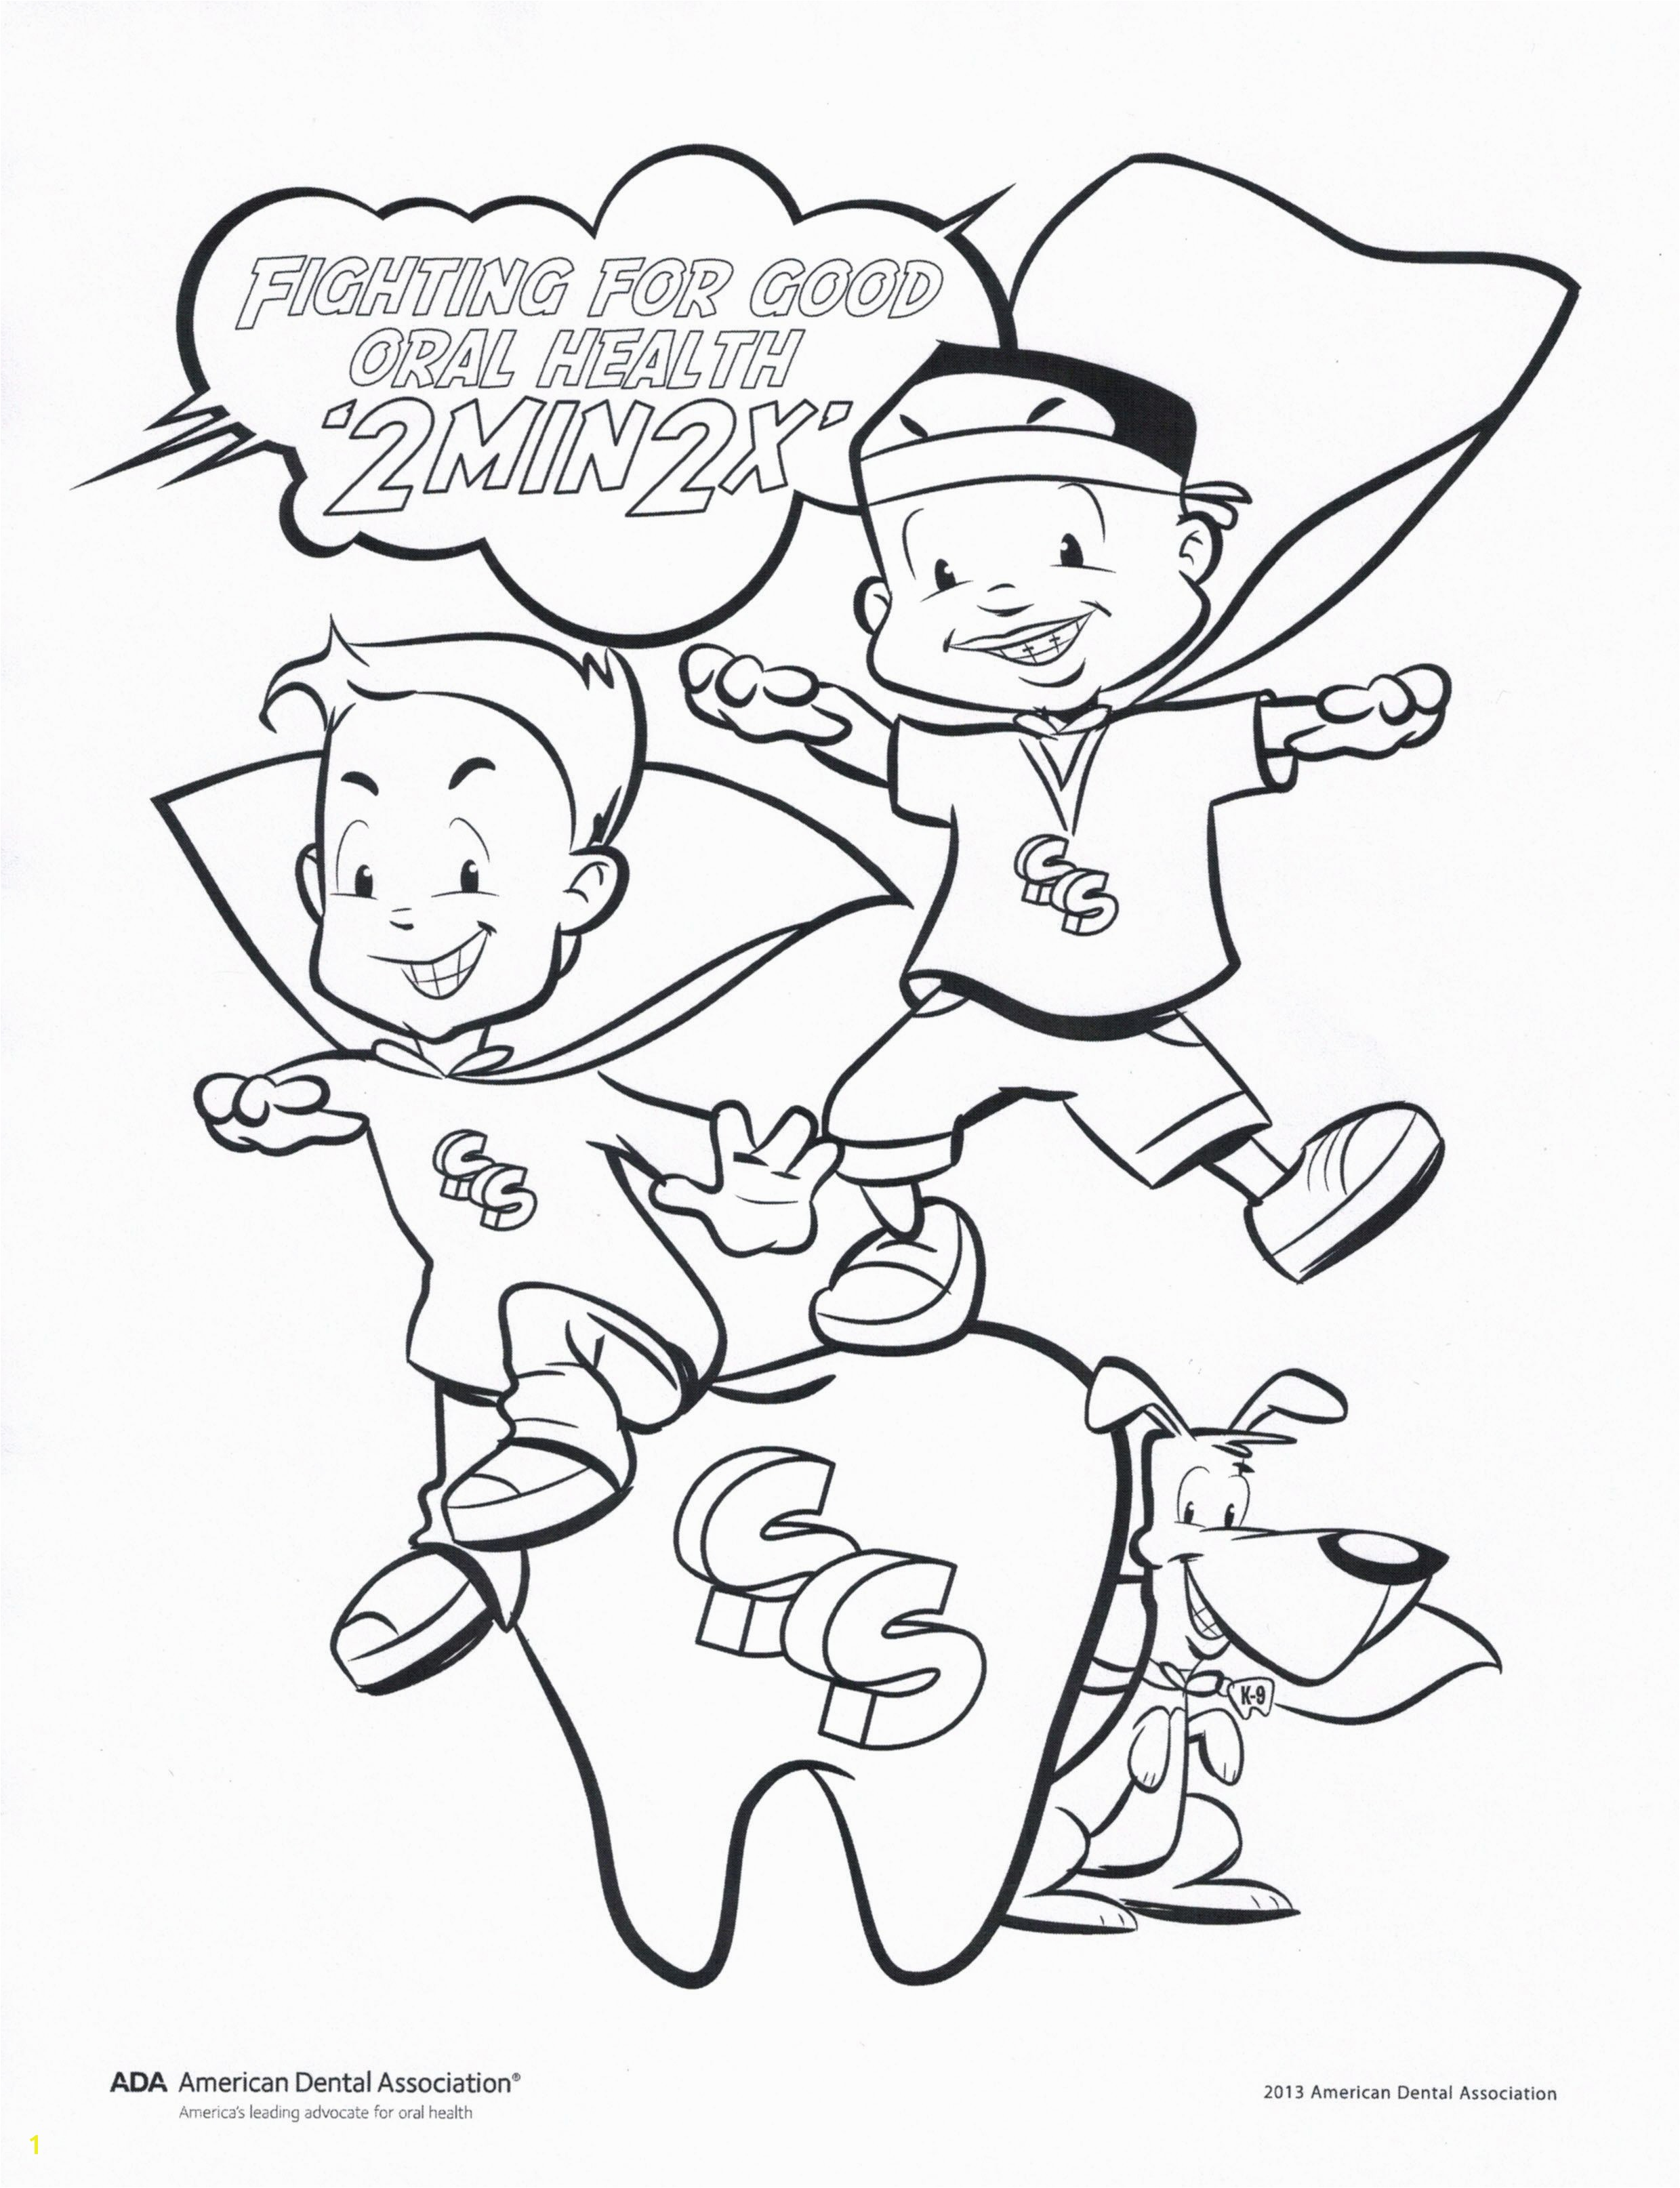 dental coloring sheet fight for good oral health coloring page